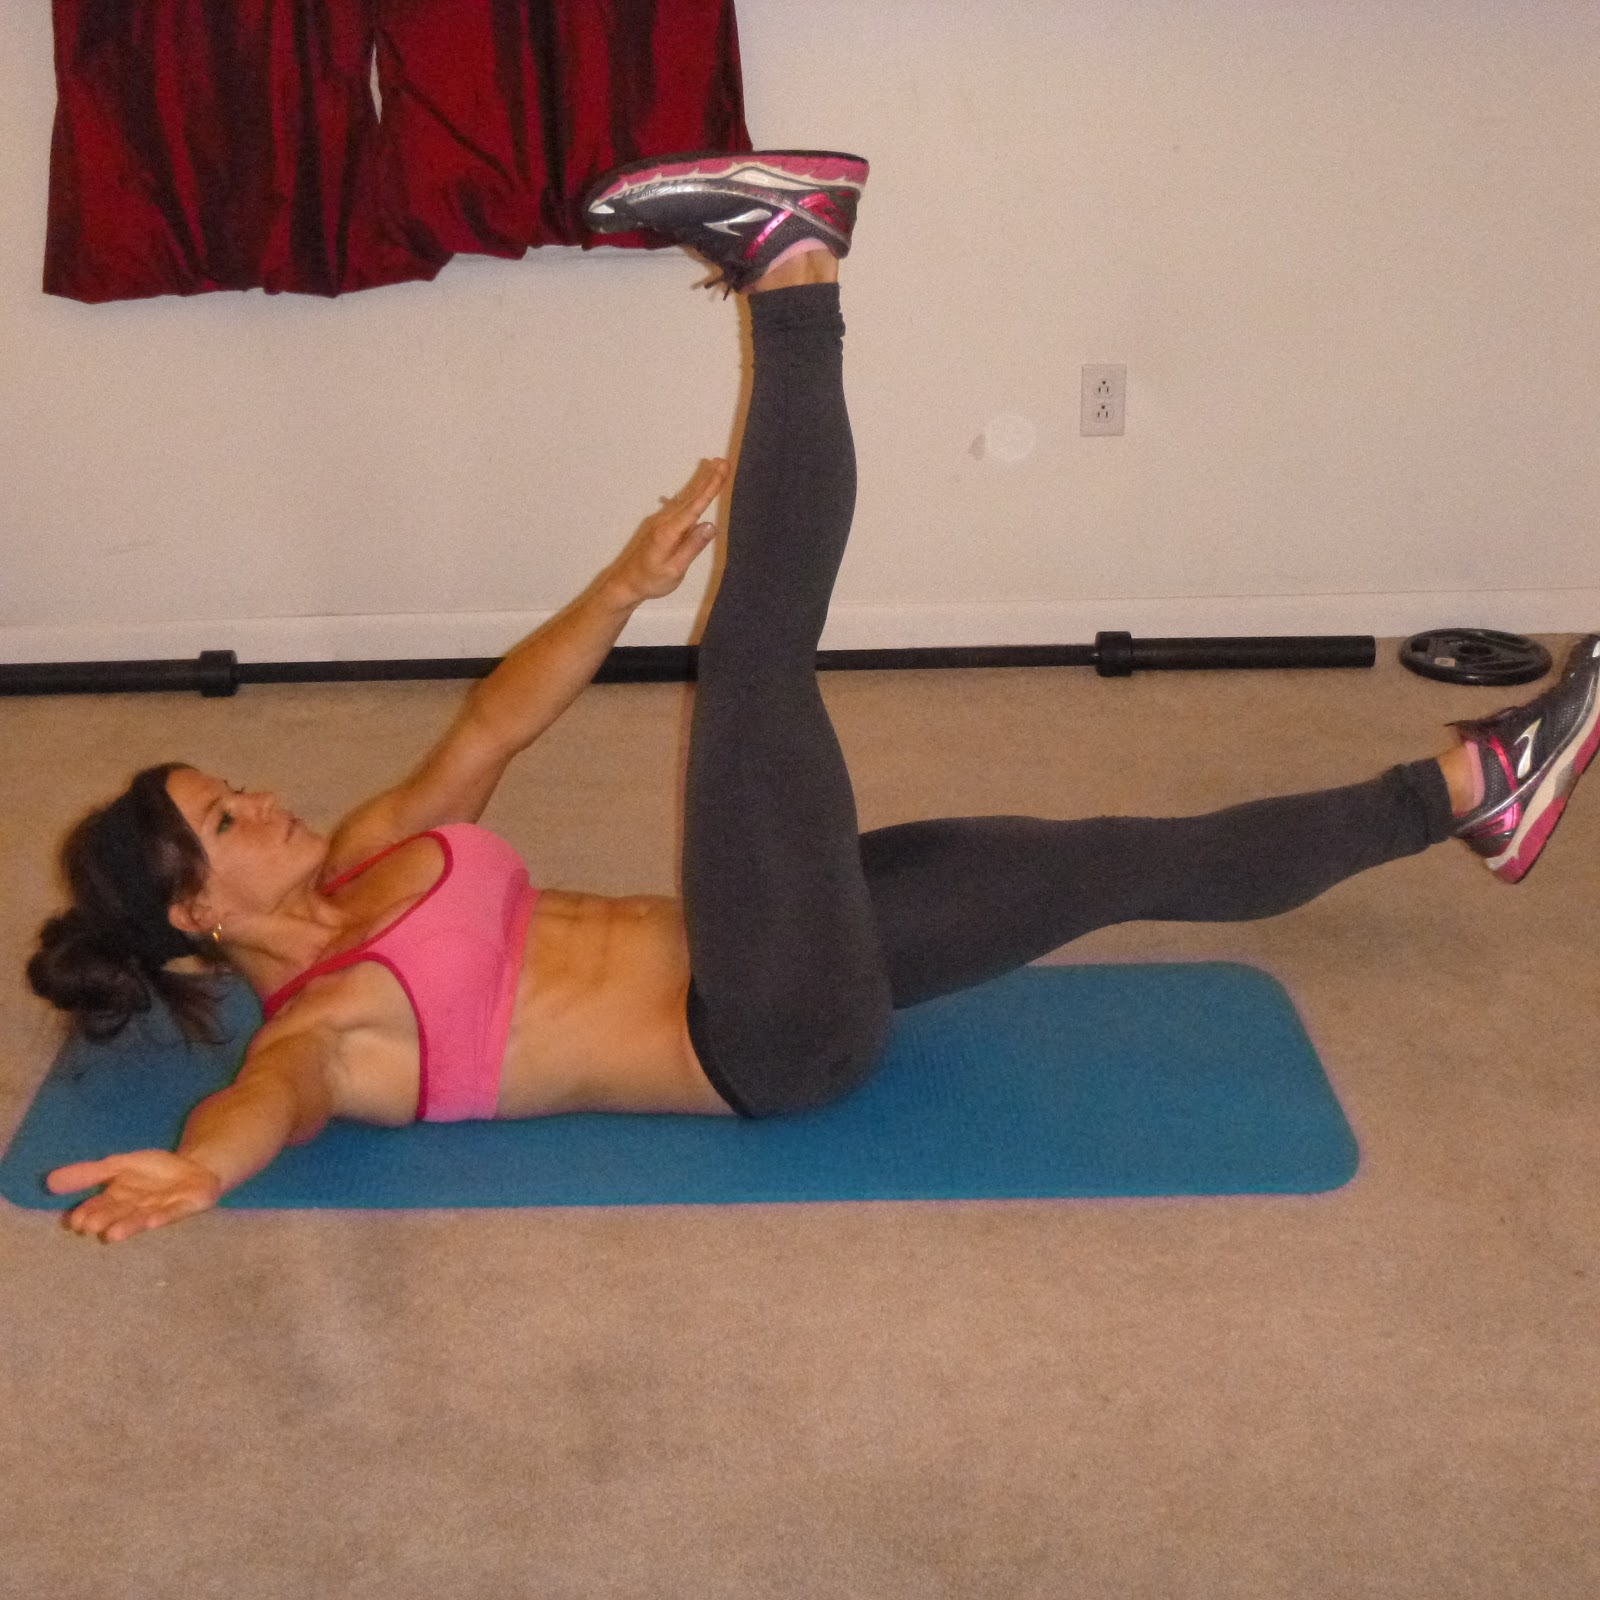 Melissa Bender Fitness October 2012 Full Body Workouts On Pinterest Circuit And Home Workout